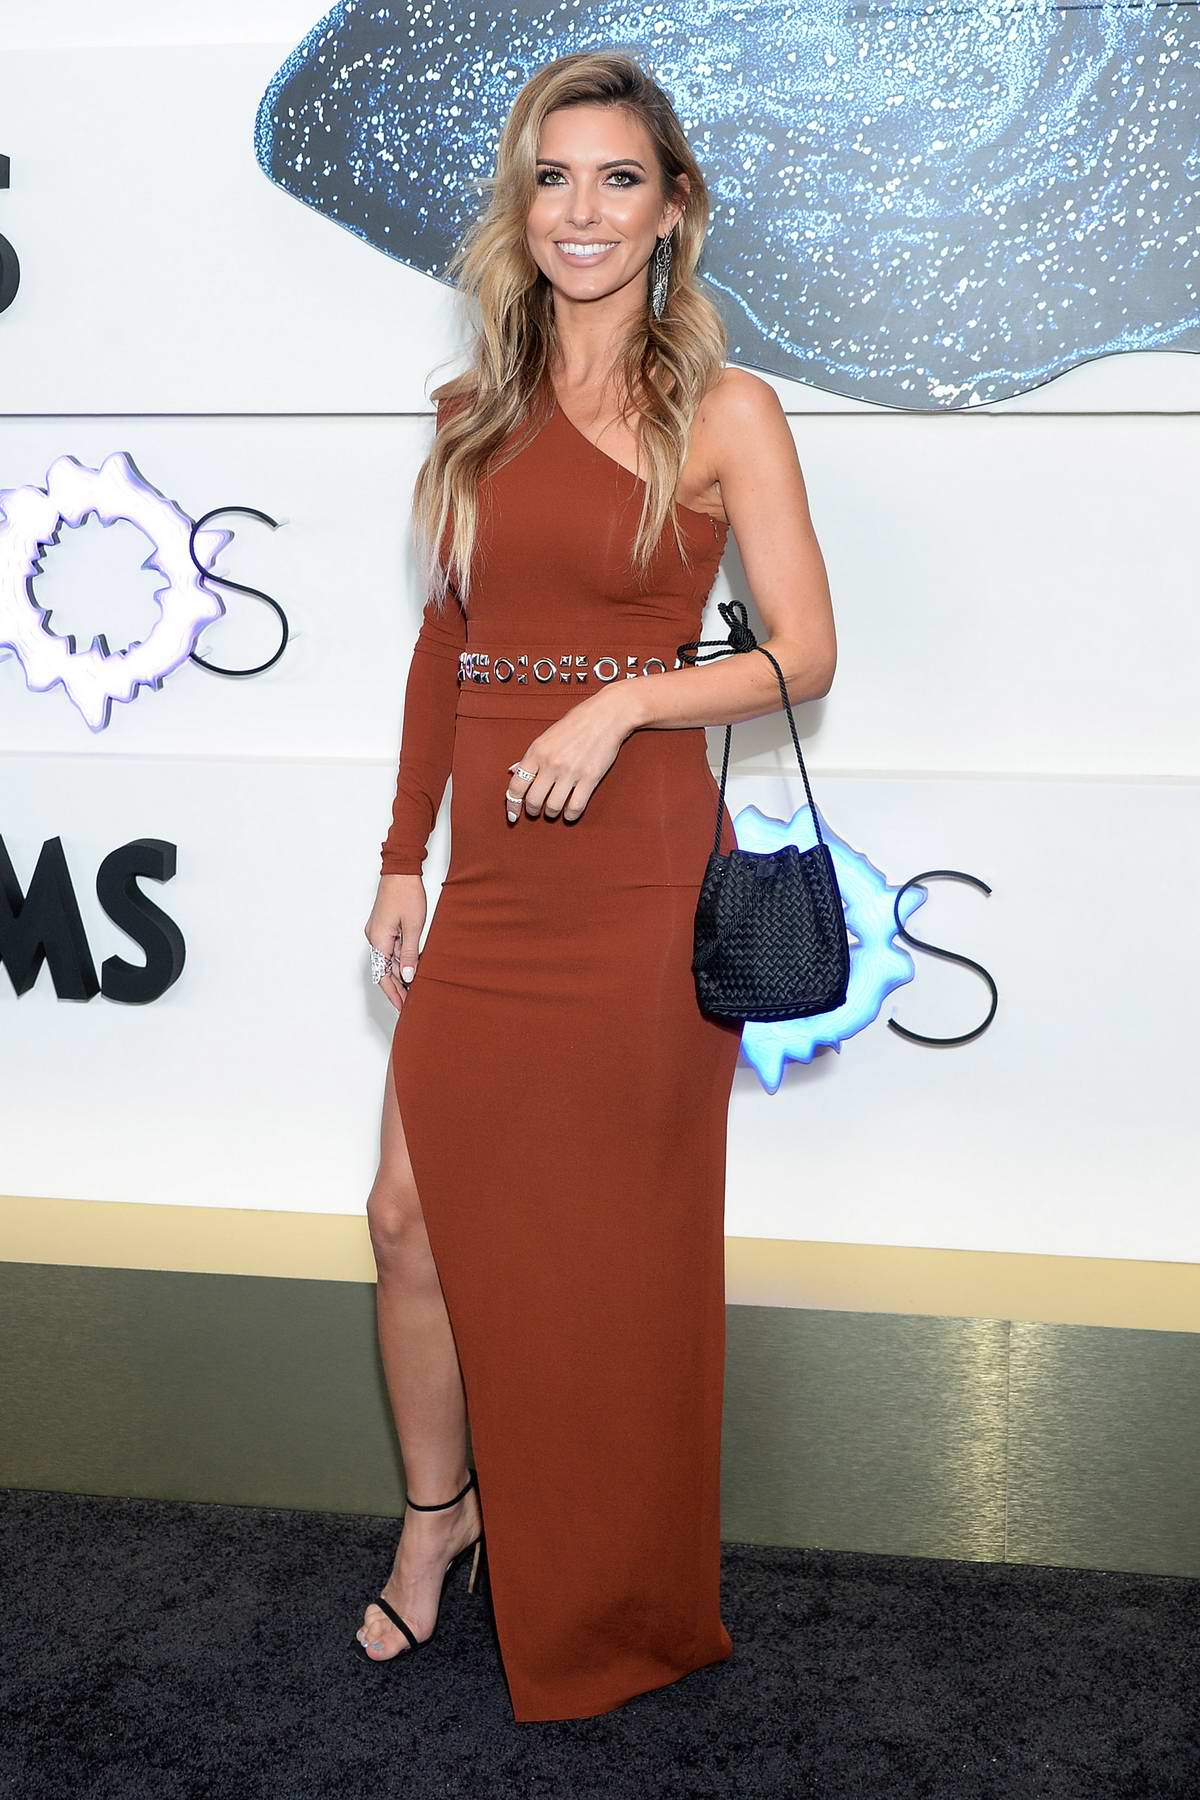 Audrina Patridge attends the KAOS Grand Opening at Palms Casino Resort in Las Vegas, Nevada